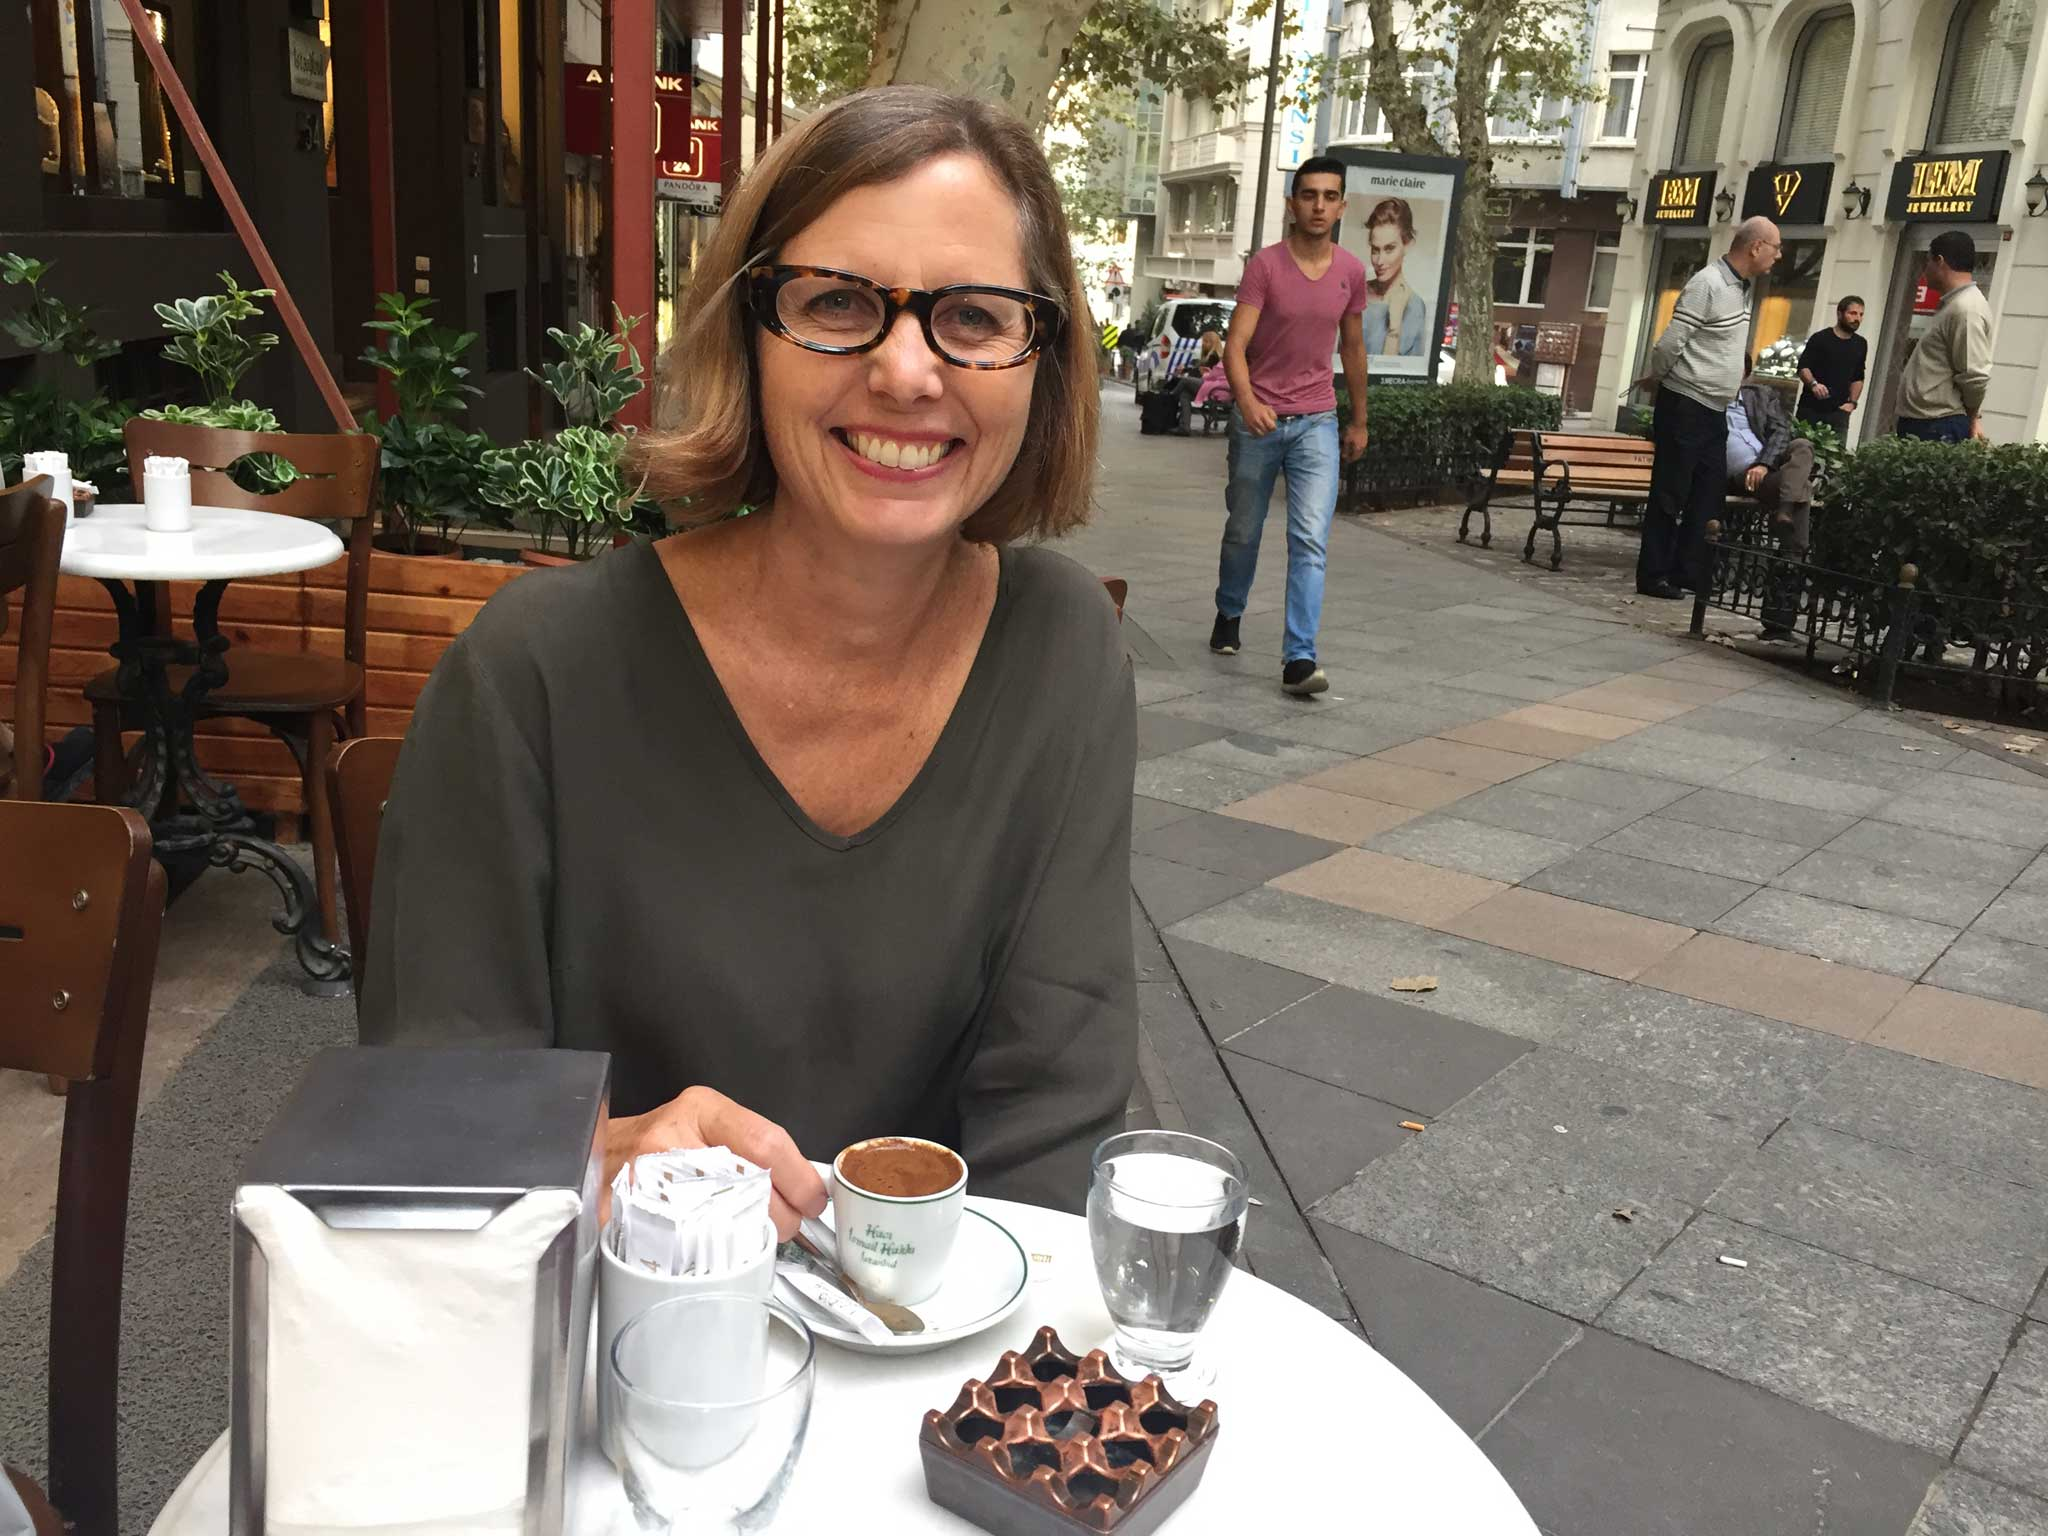 Carol Sebert, President of Creative Matters enjoys a cup of Turkish Coffee during the Inaugural Istanbul Carpet Week. Carol presented 'Contemporary Carpet Design' at the Istanbul International Carpet Conference, 6 October 2016. | Image courtesy of The Ruggist.